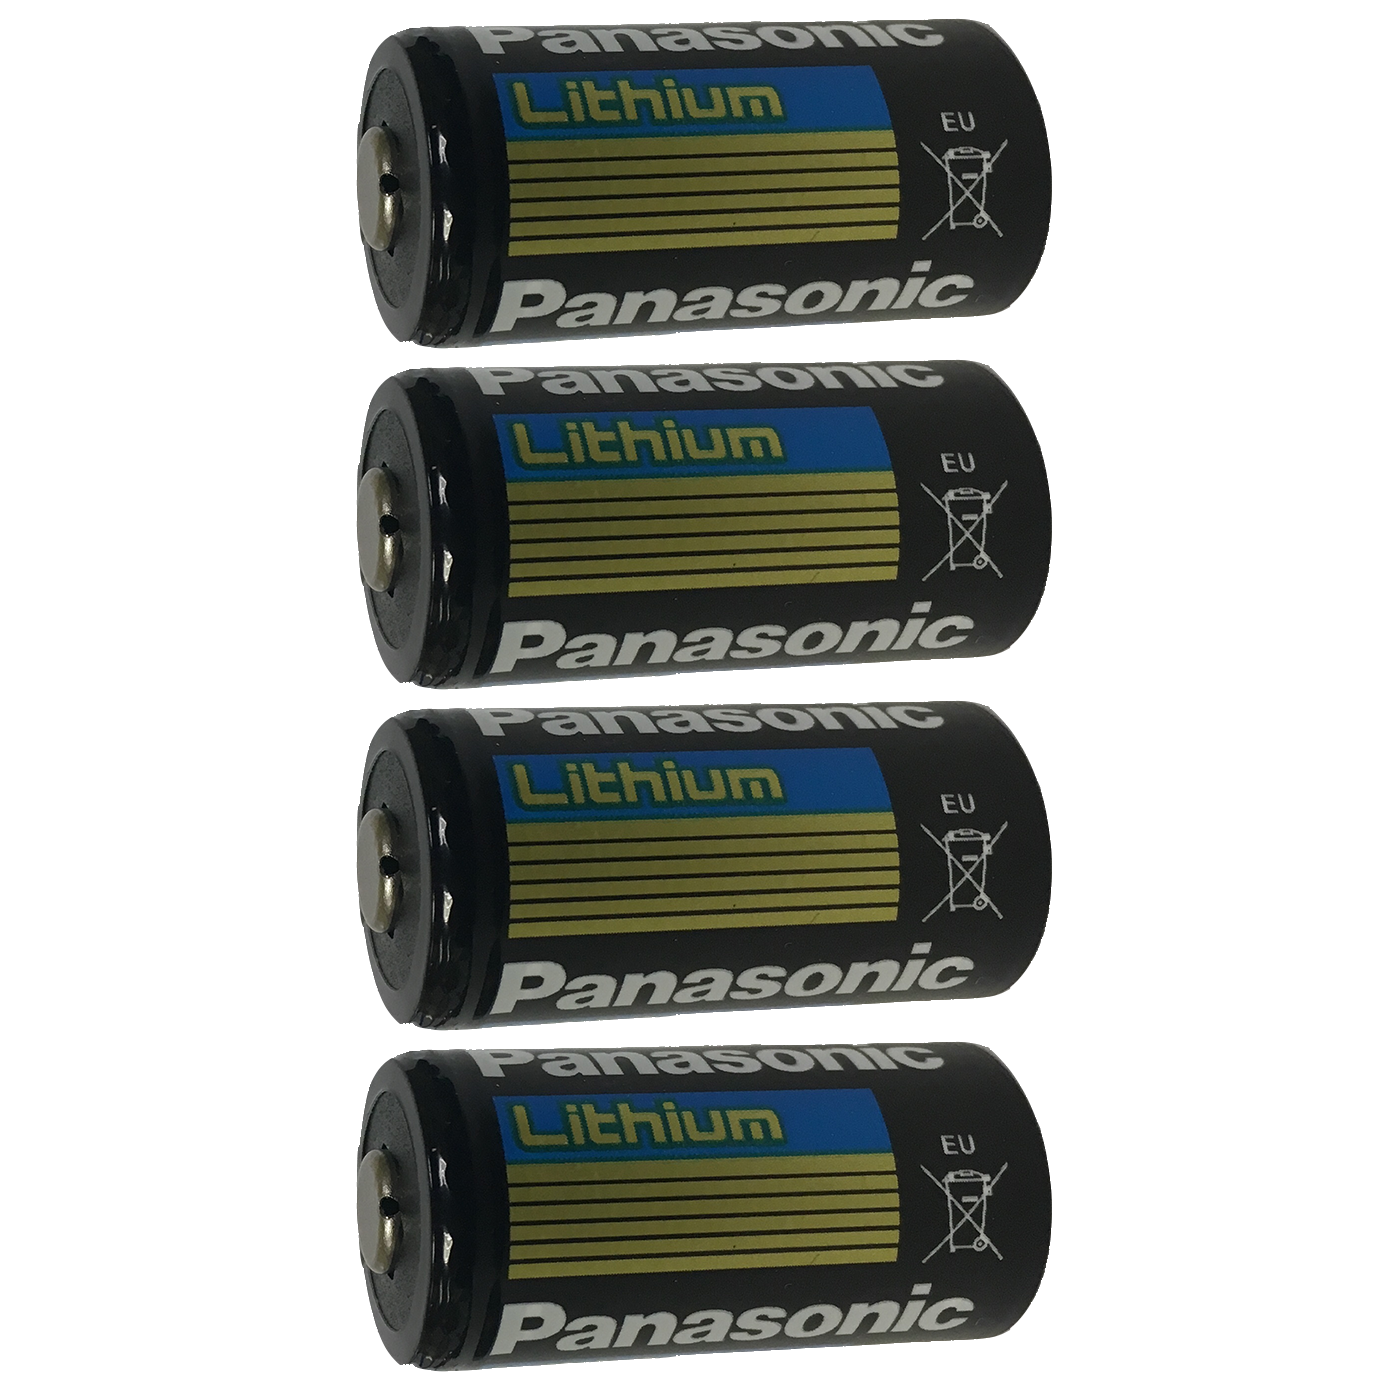 Panasonic Cr123 Cr123a 123 Dl123a 3v Lithium Battery Pl123